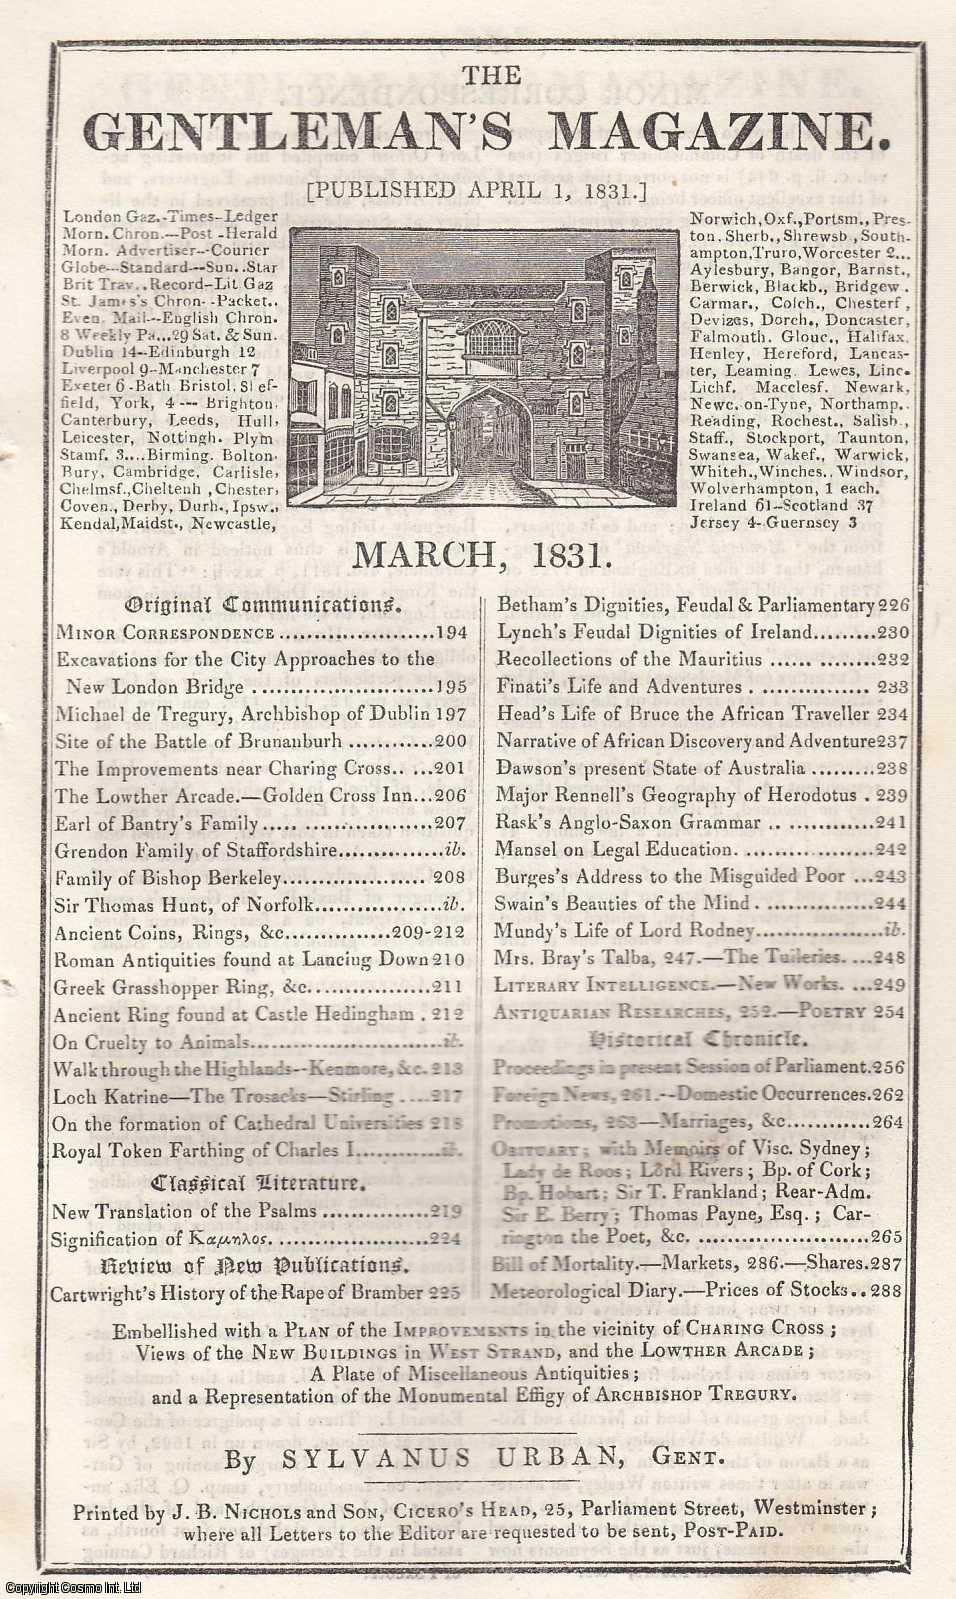 The Gentleman's Magazine for March 1831. FEATURING A Miscellaneous Plate of Antiquities., Urban, Sylvanus.